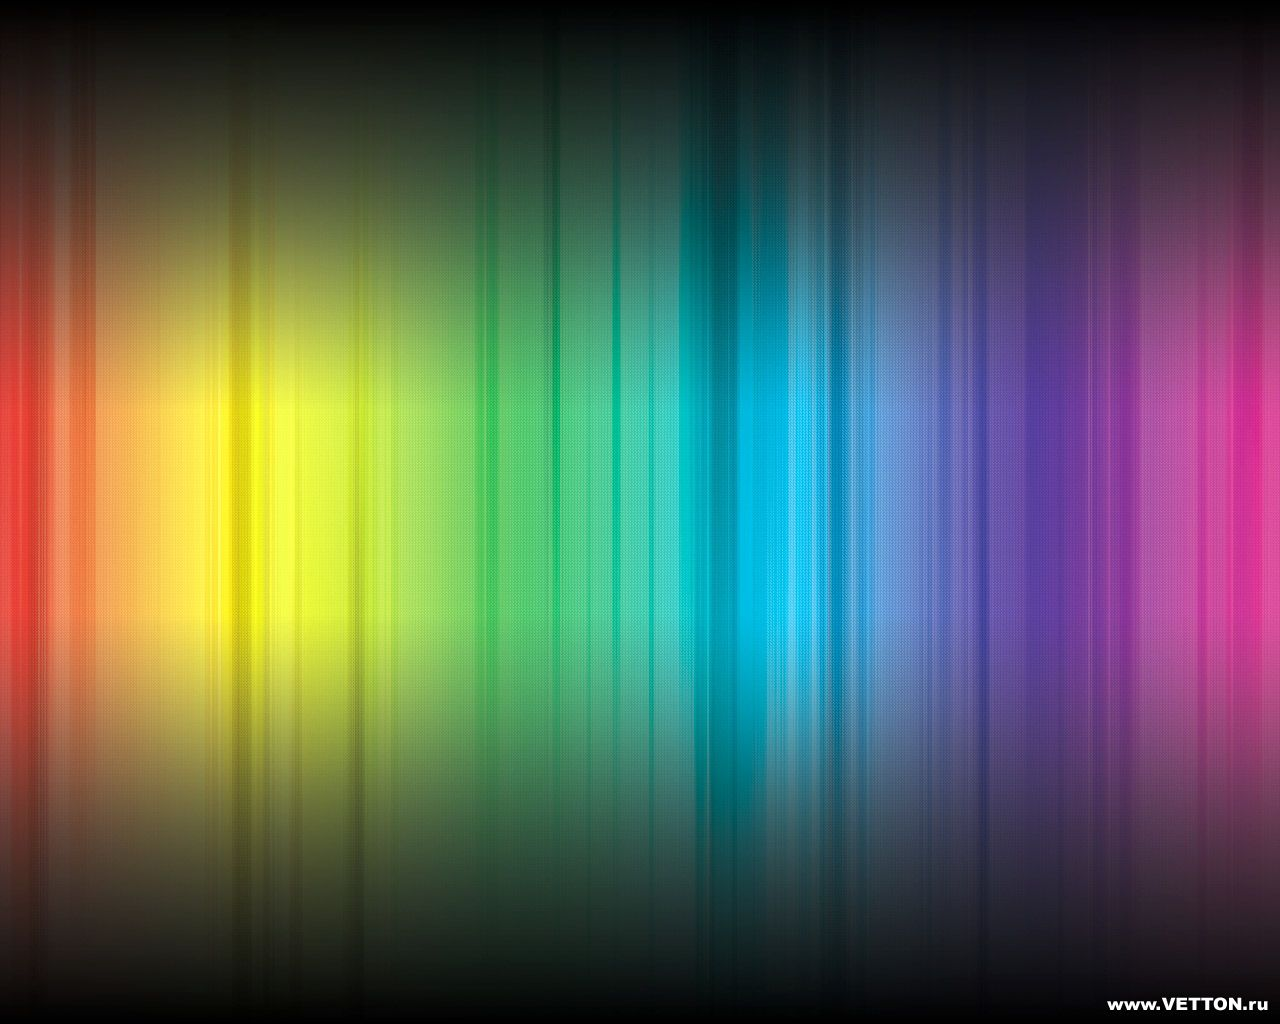 Very colorful wallpapers wallpapersafari for Beautiful wallpapers for lounges